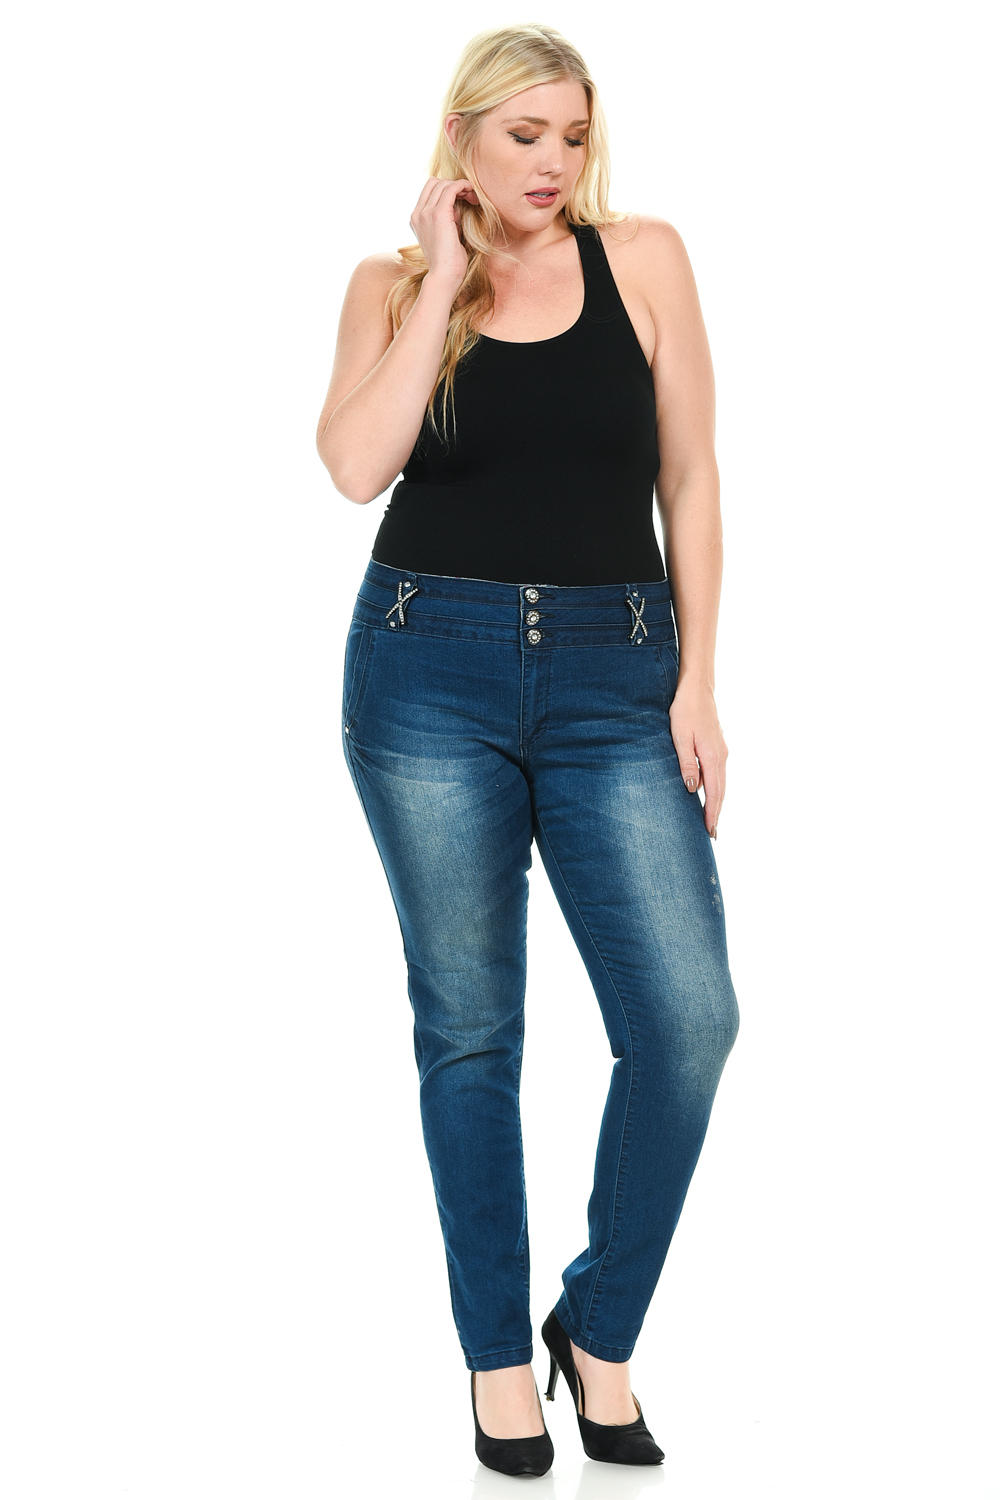 Sweet Look Premium Edition Women's Jeans - Plus Size - High Waist - Skinny - Style 001